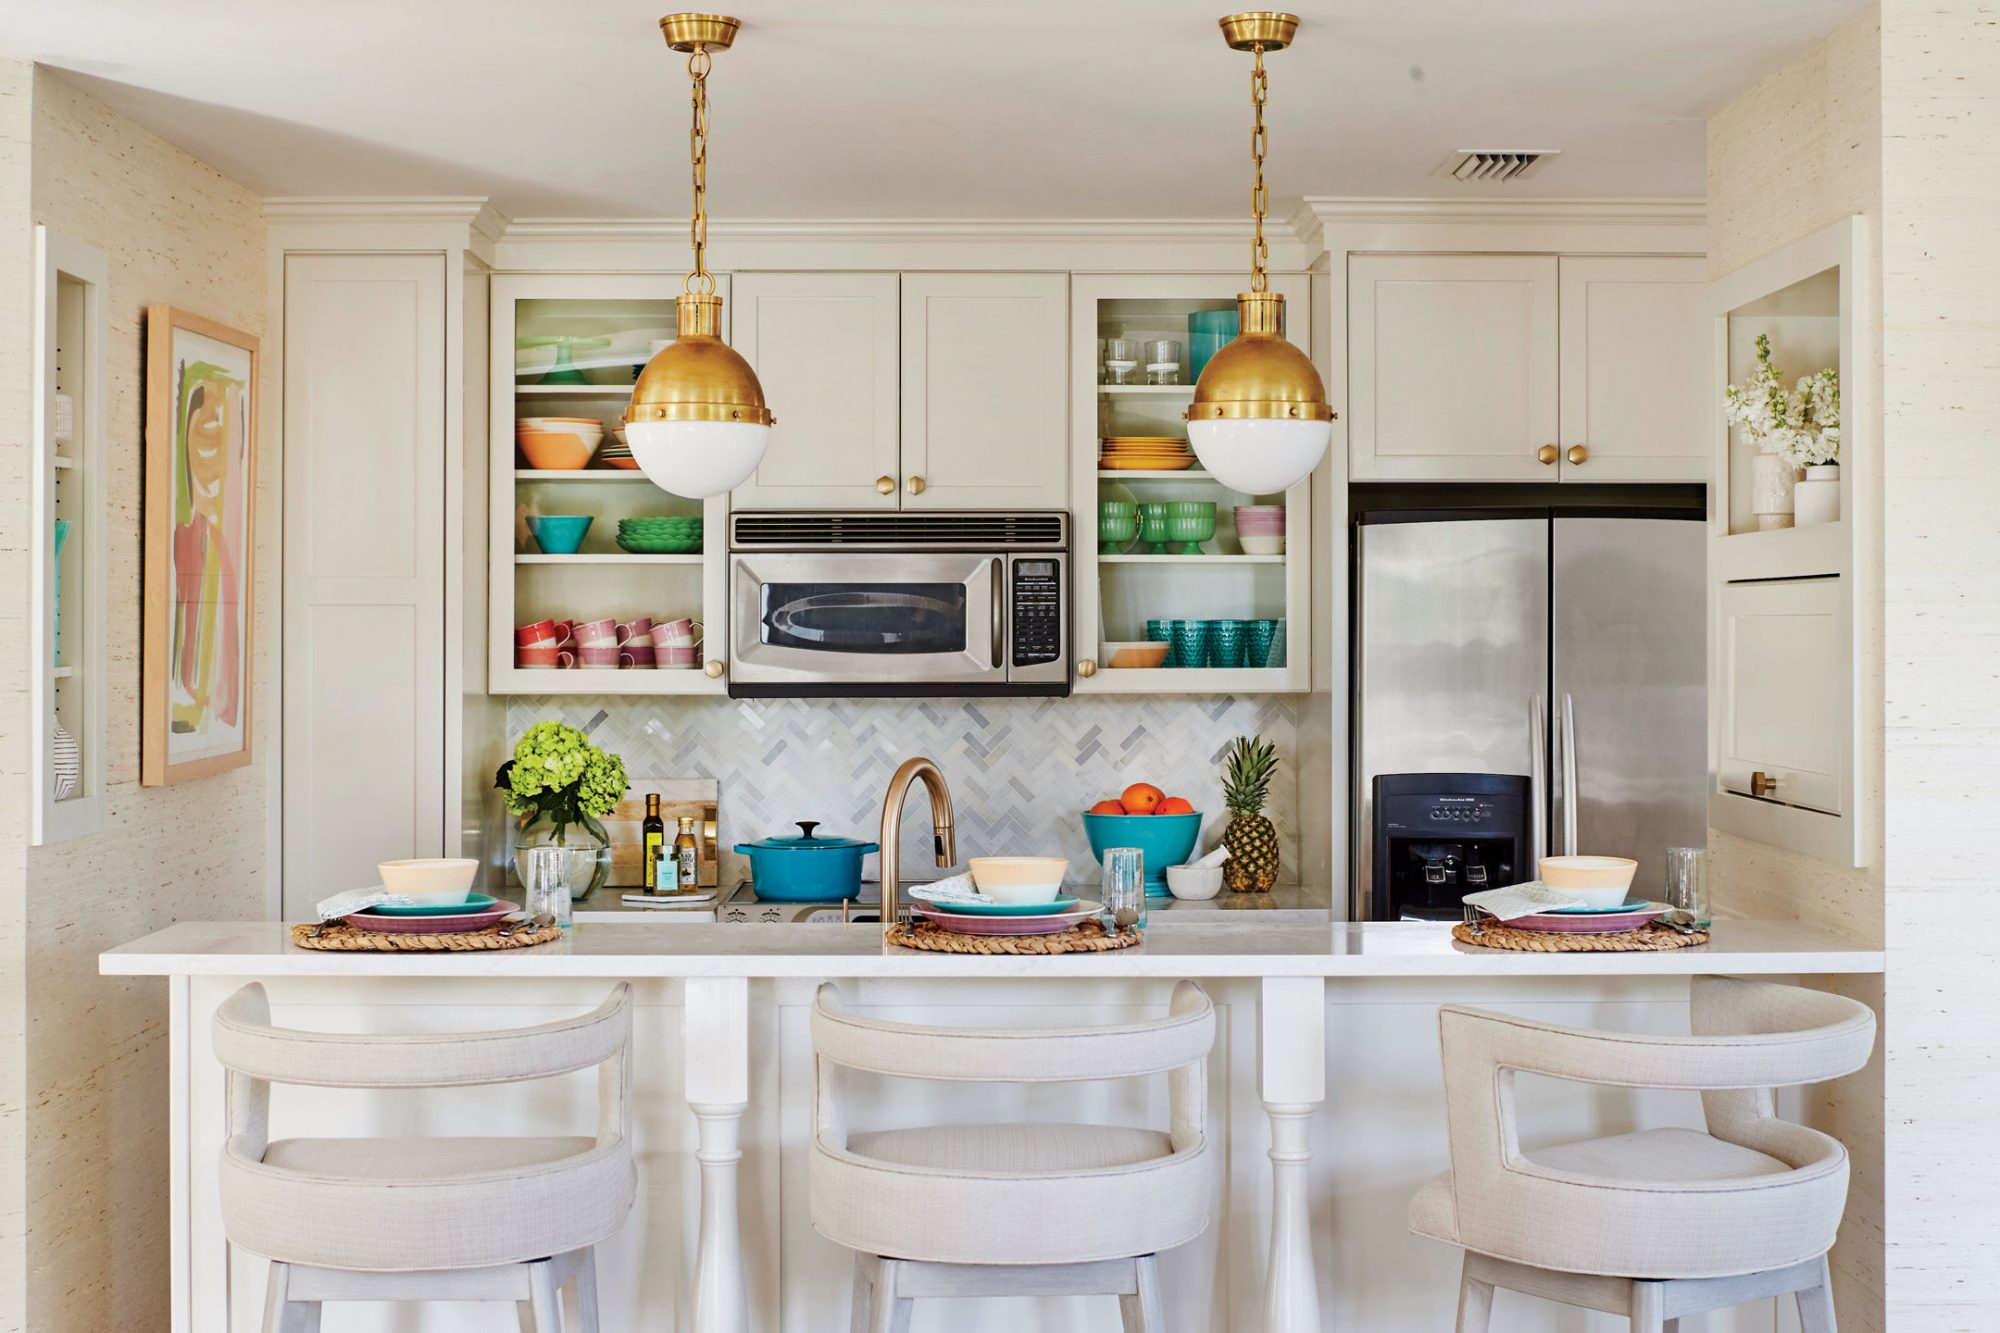 This New Kitchen and Bath Trend Is Taking Over Subway Tiles